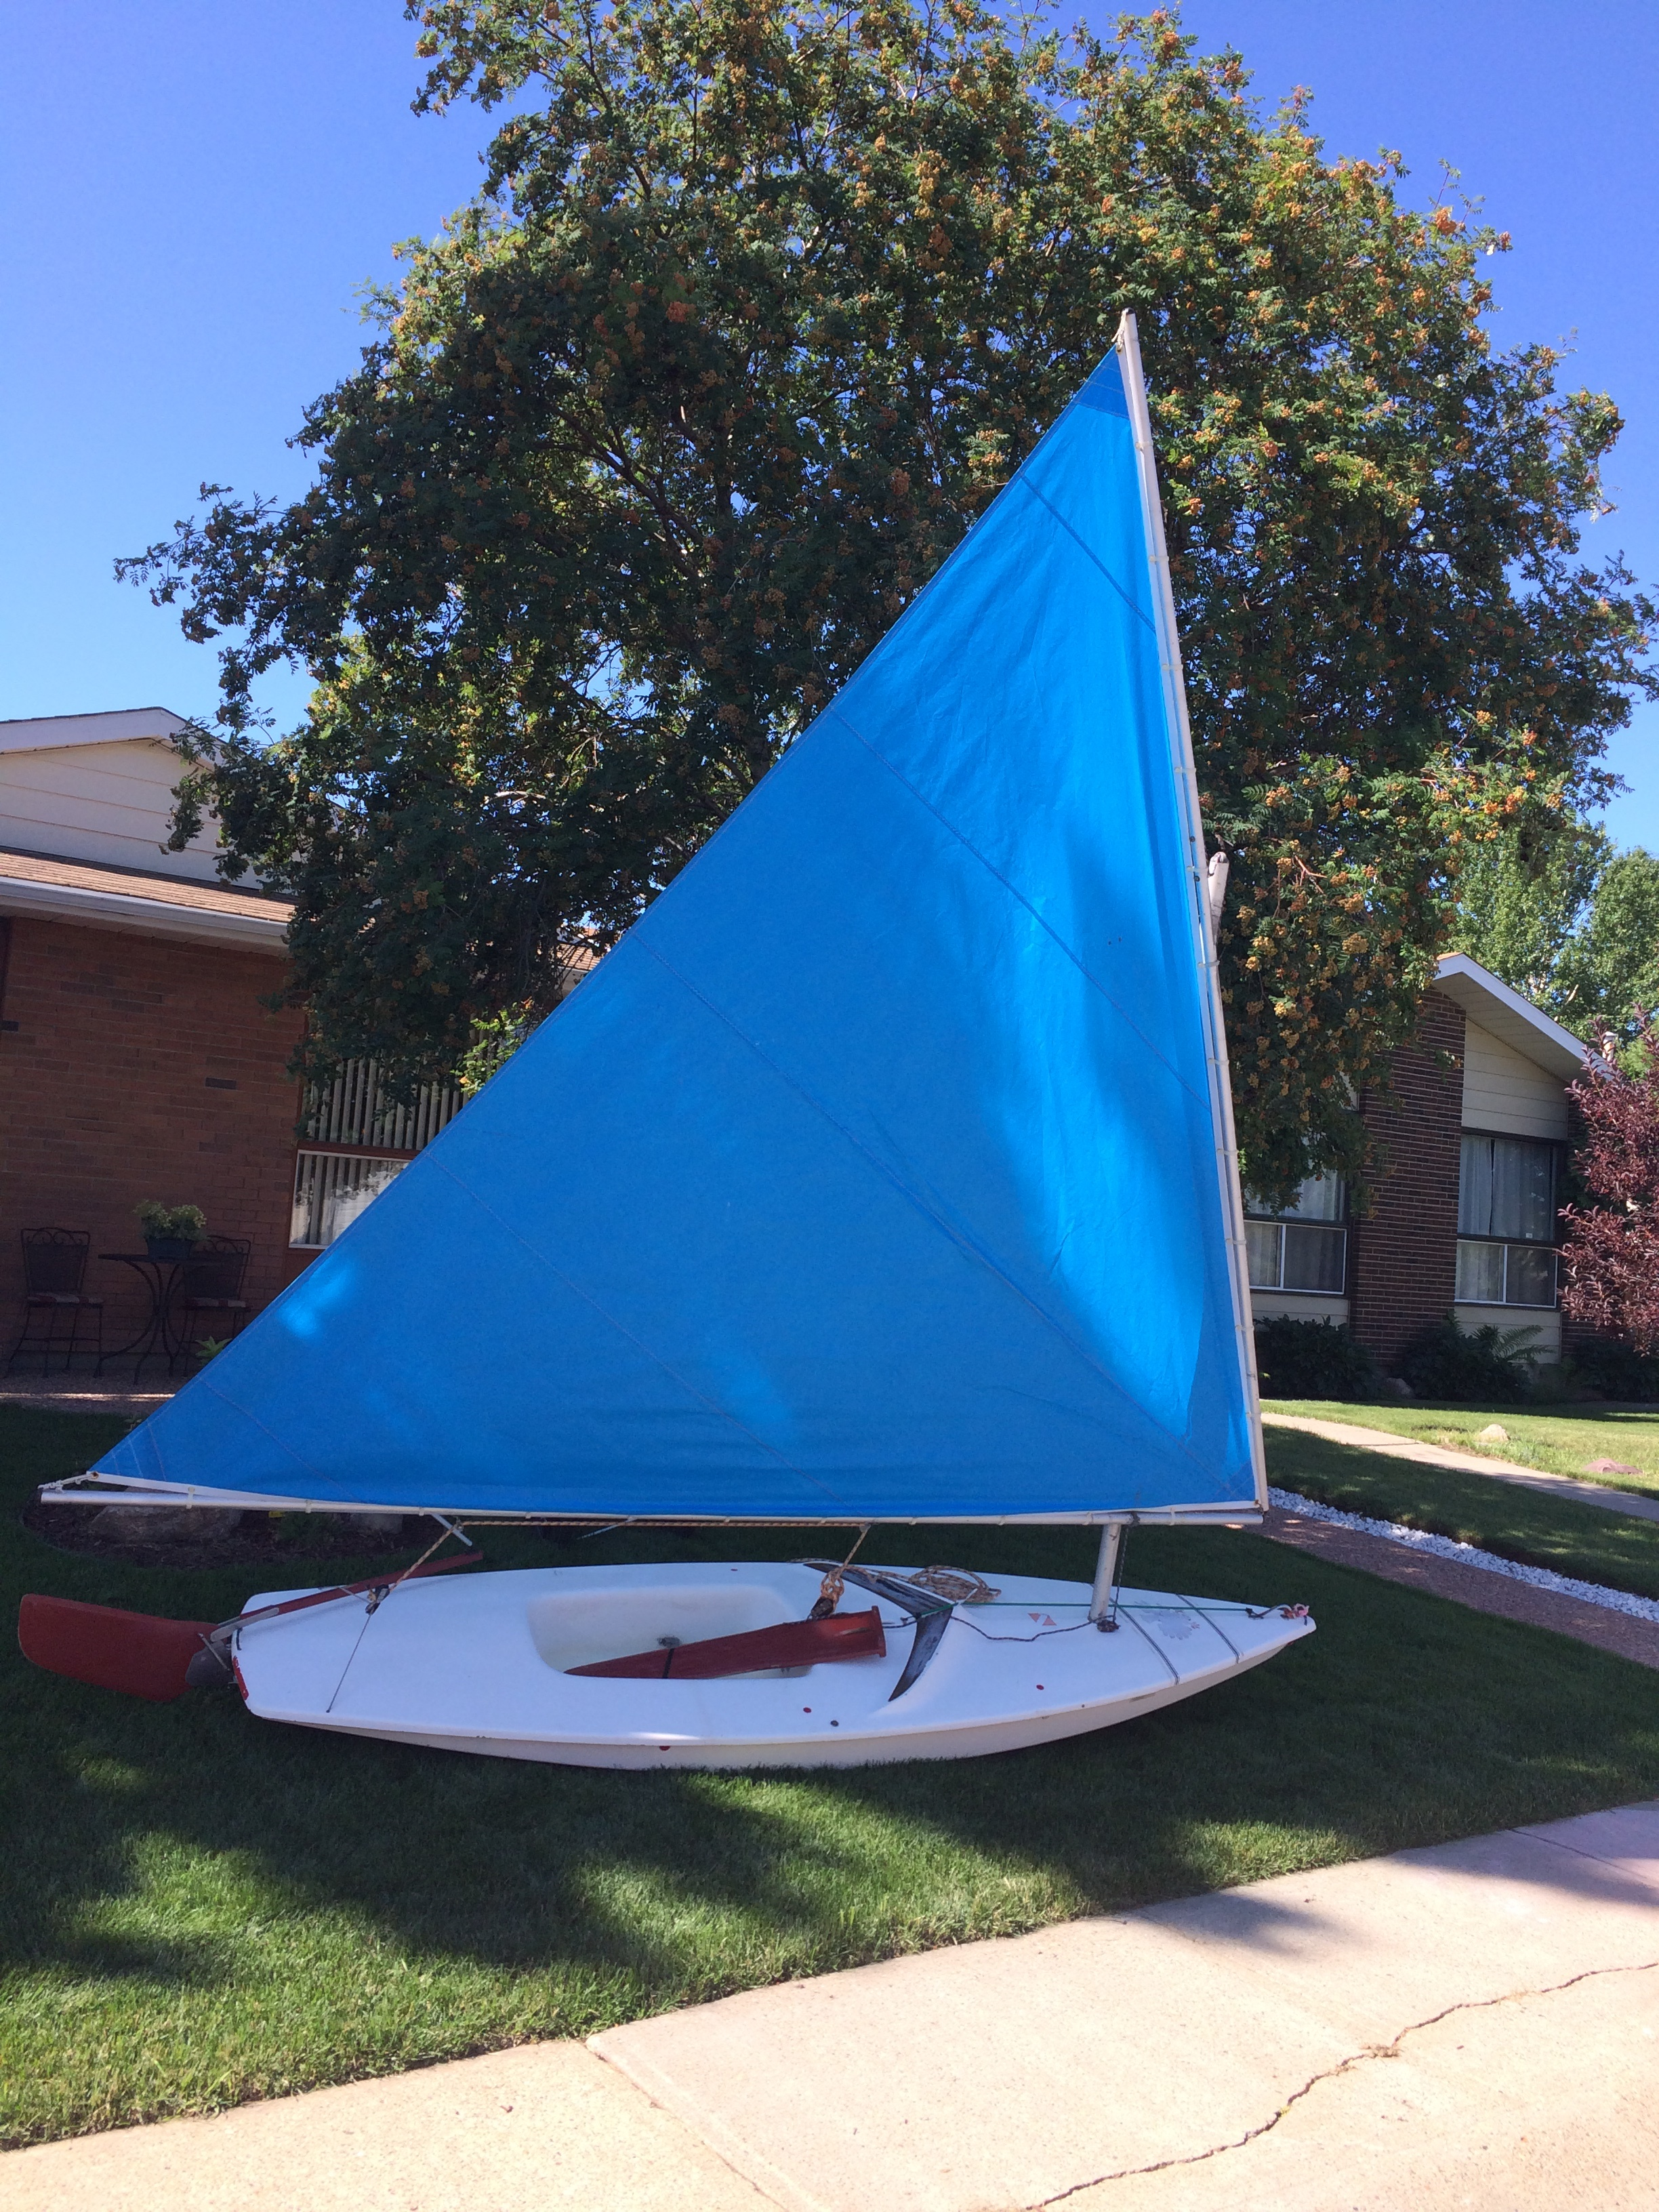 sailboats for sale edmonton